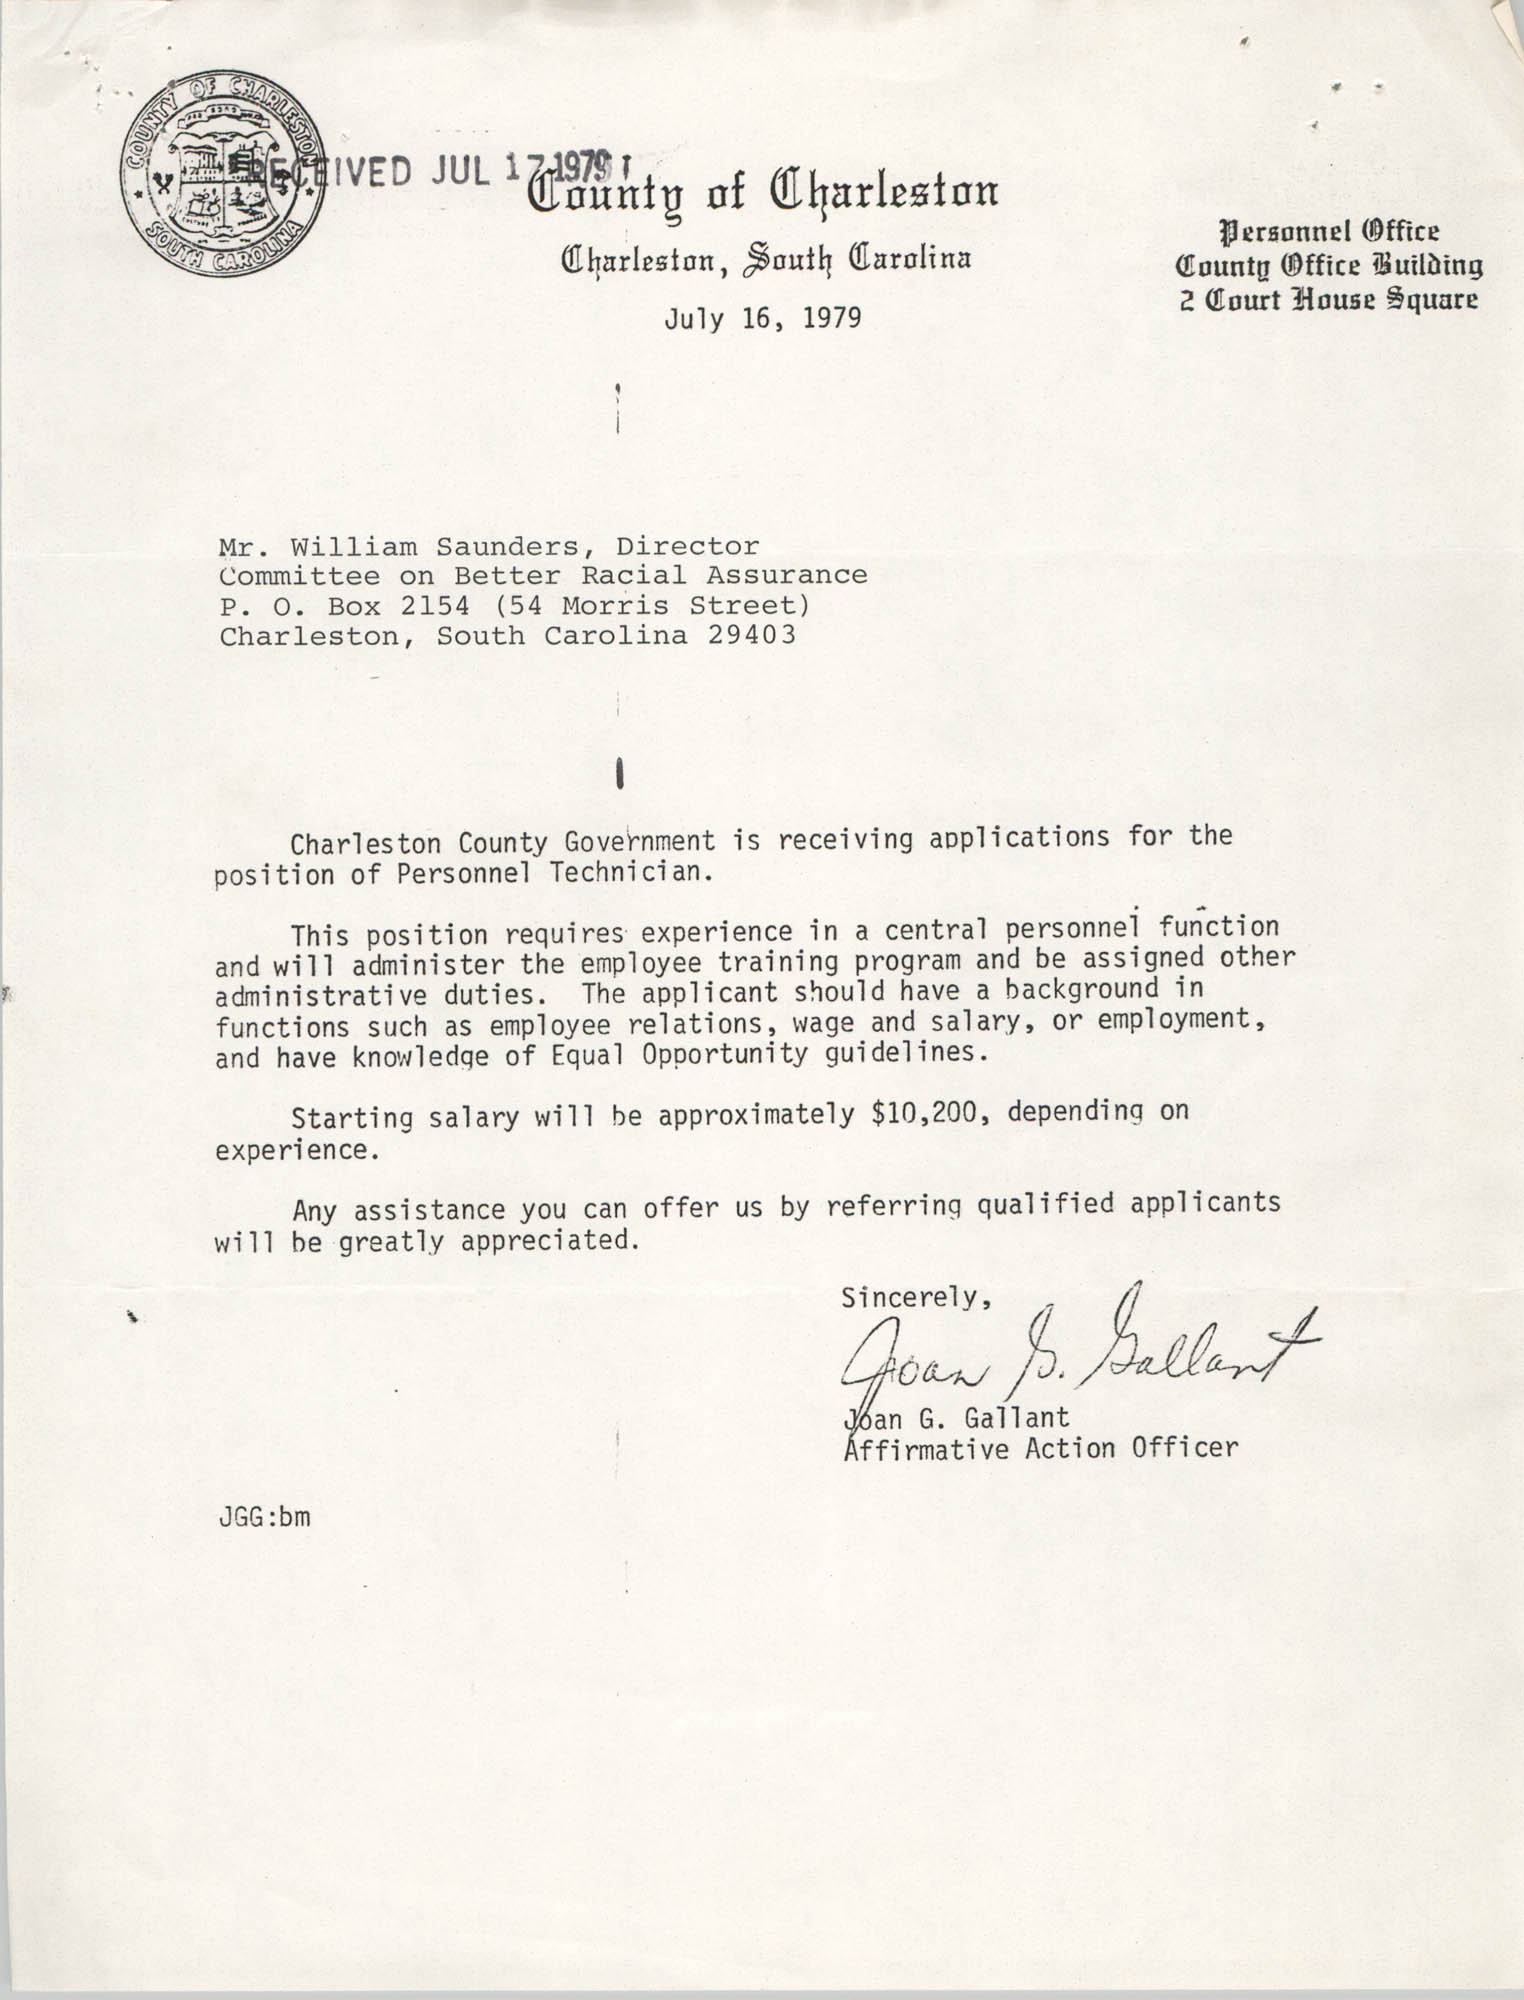 Letter from Joan G. Gallant to William Saunders, July 16, 1979